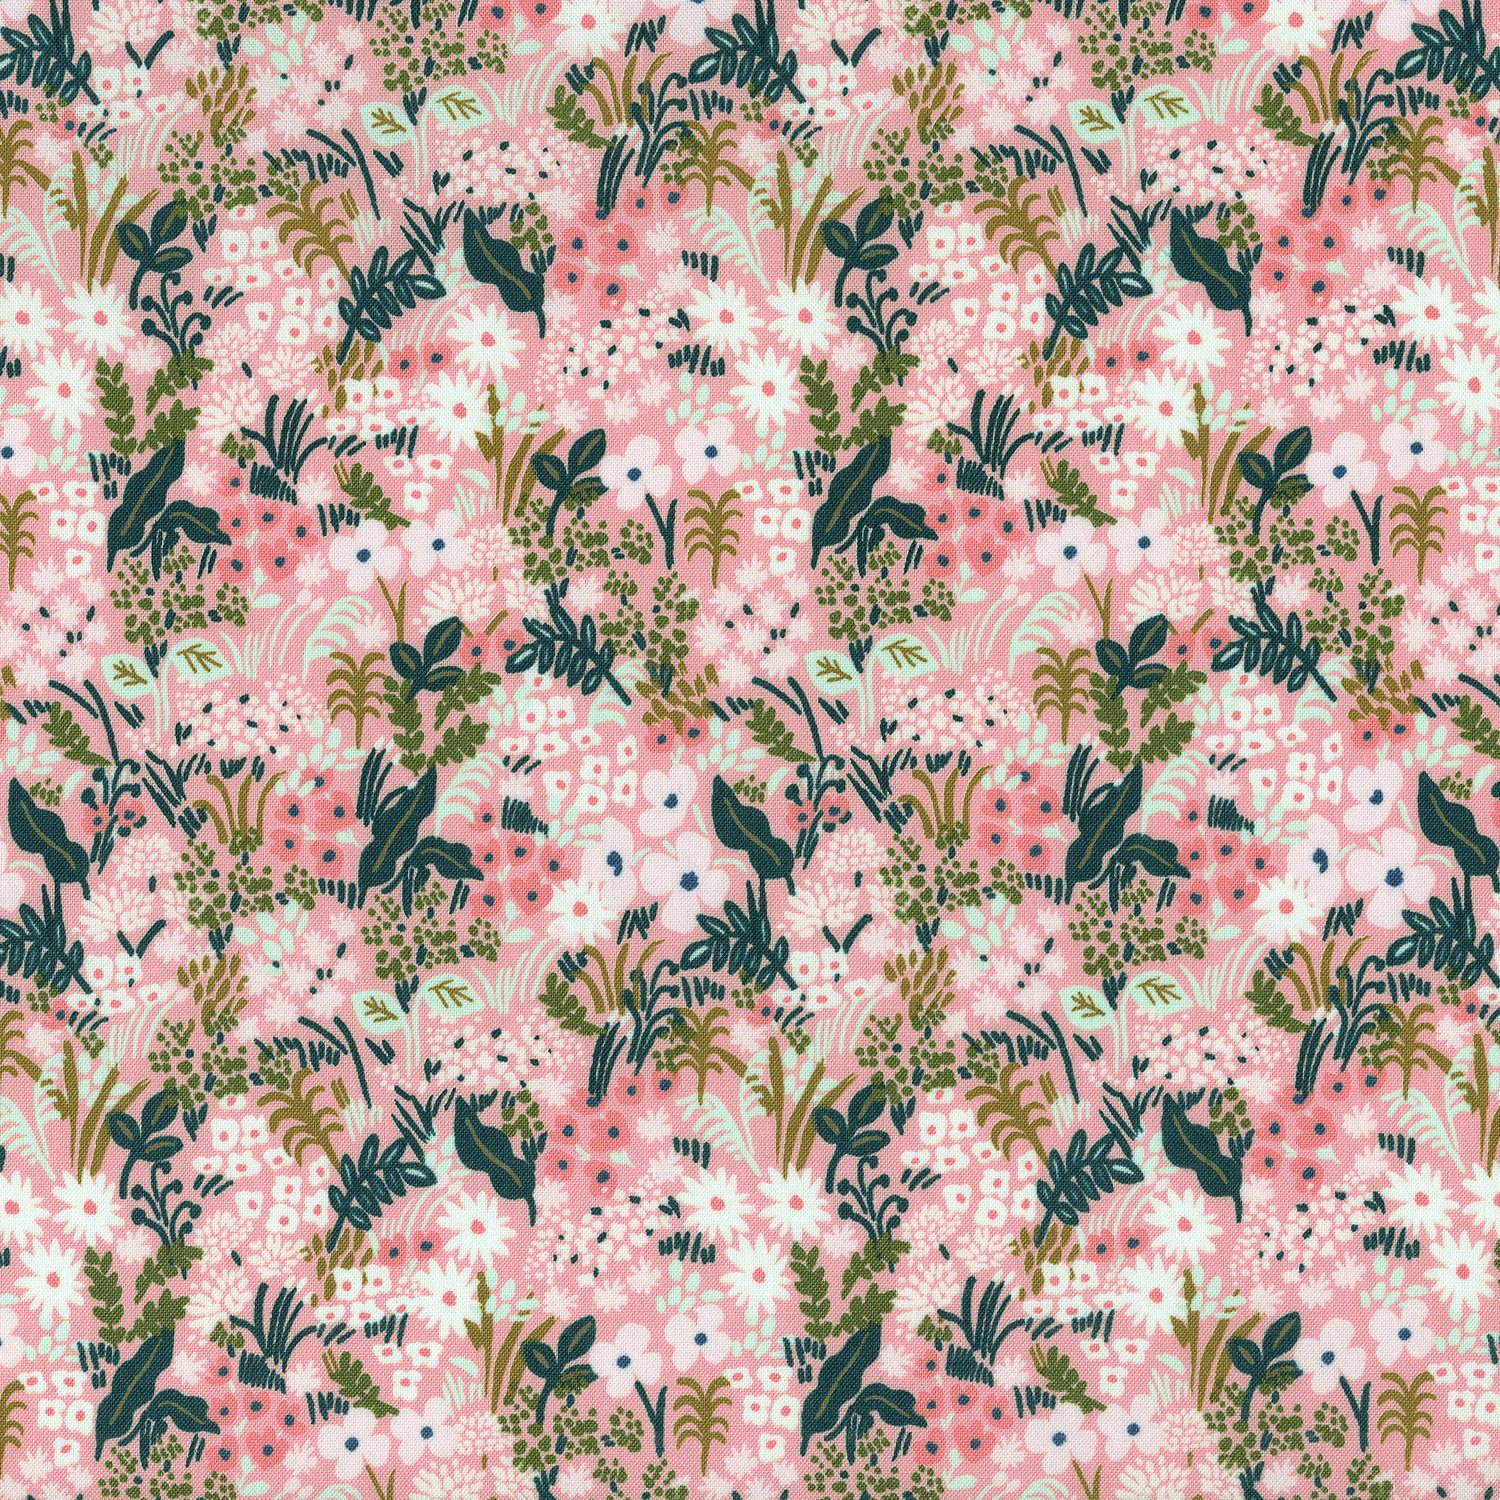 AB8059-003 English Garden Meadow Pink Cotton + Steel